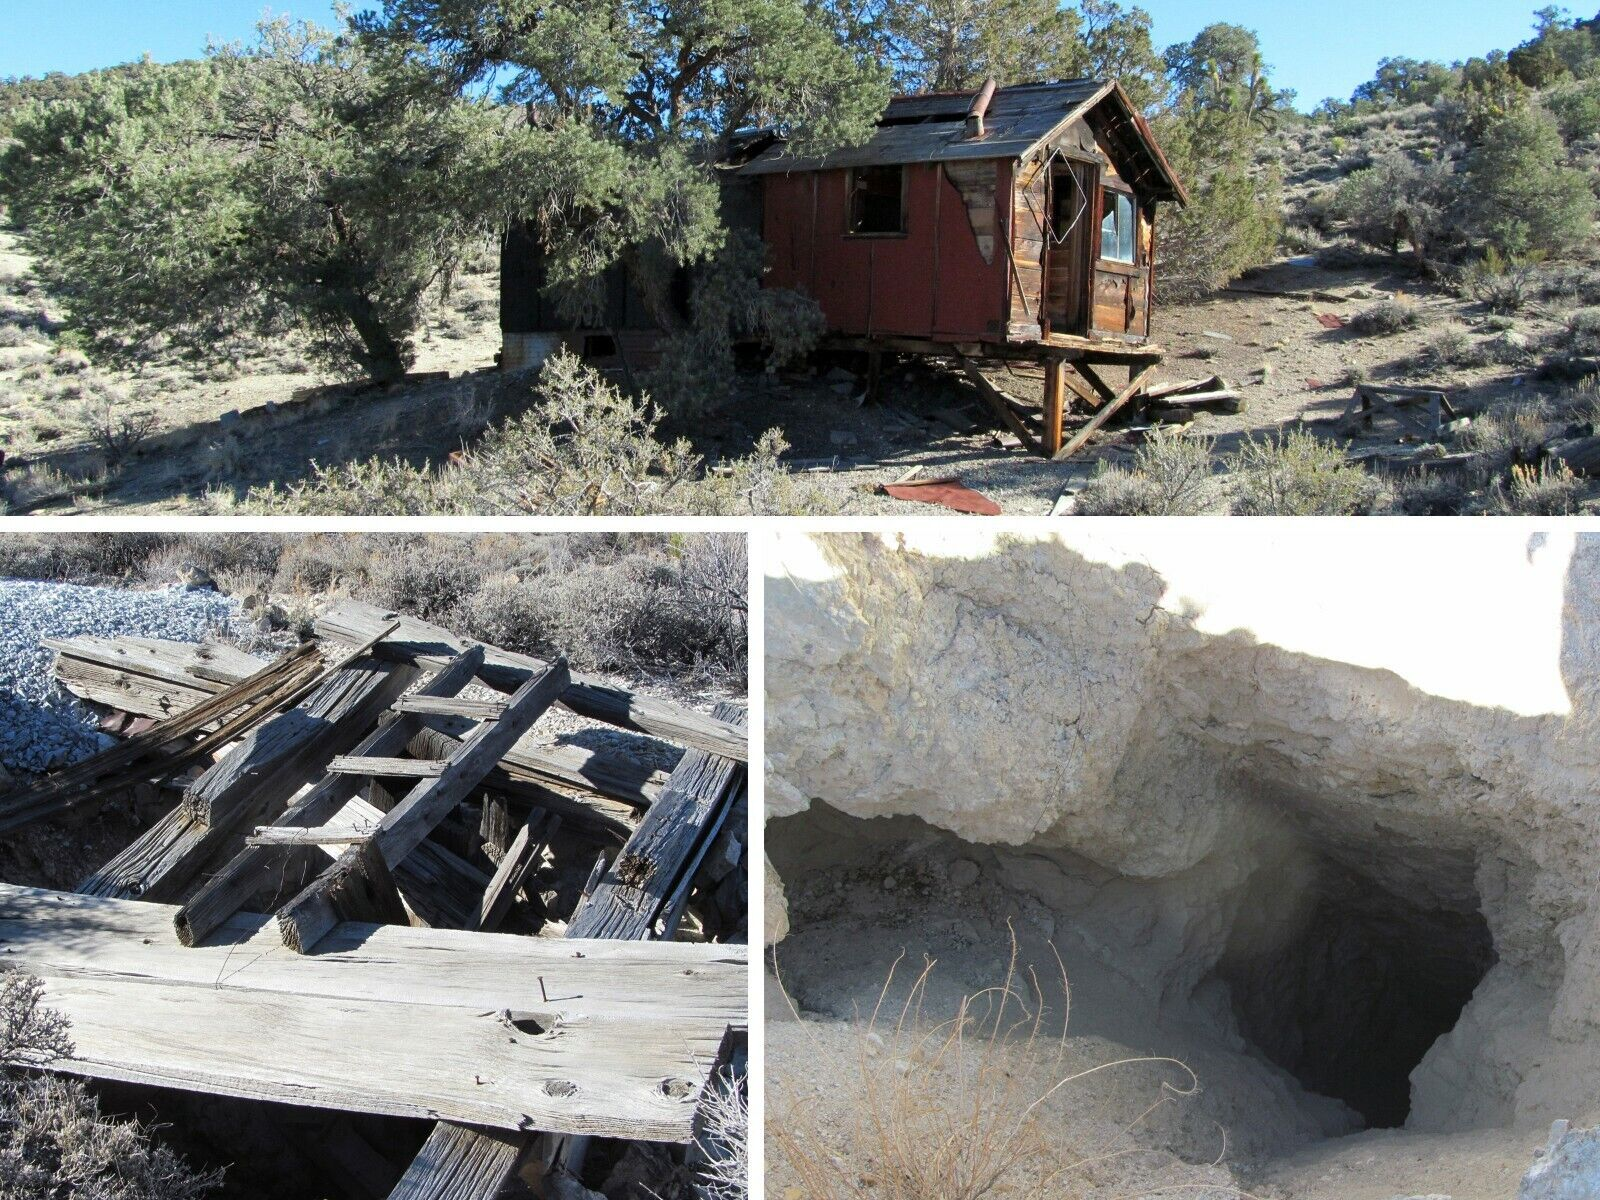 Nevada Gold Silver Mine Historic Palmetto Mining Cabin Claim Adit Shaft Chute